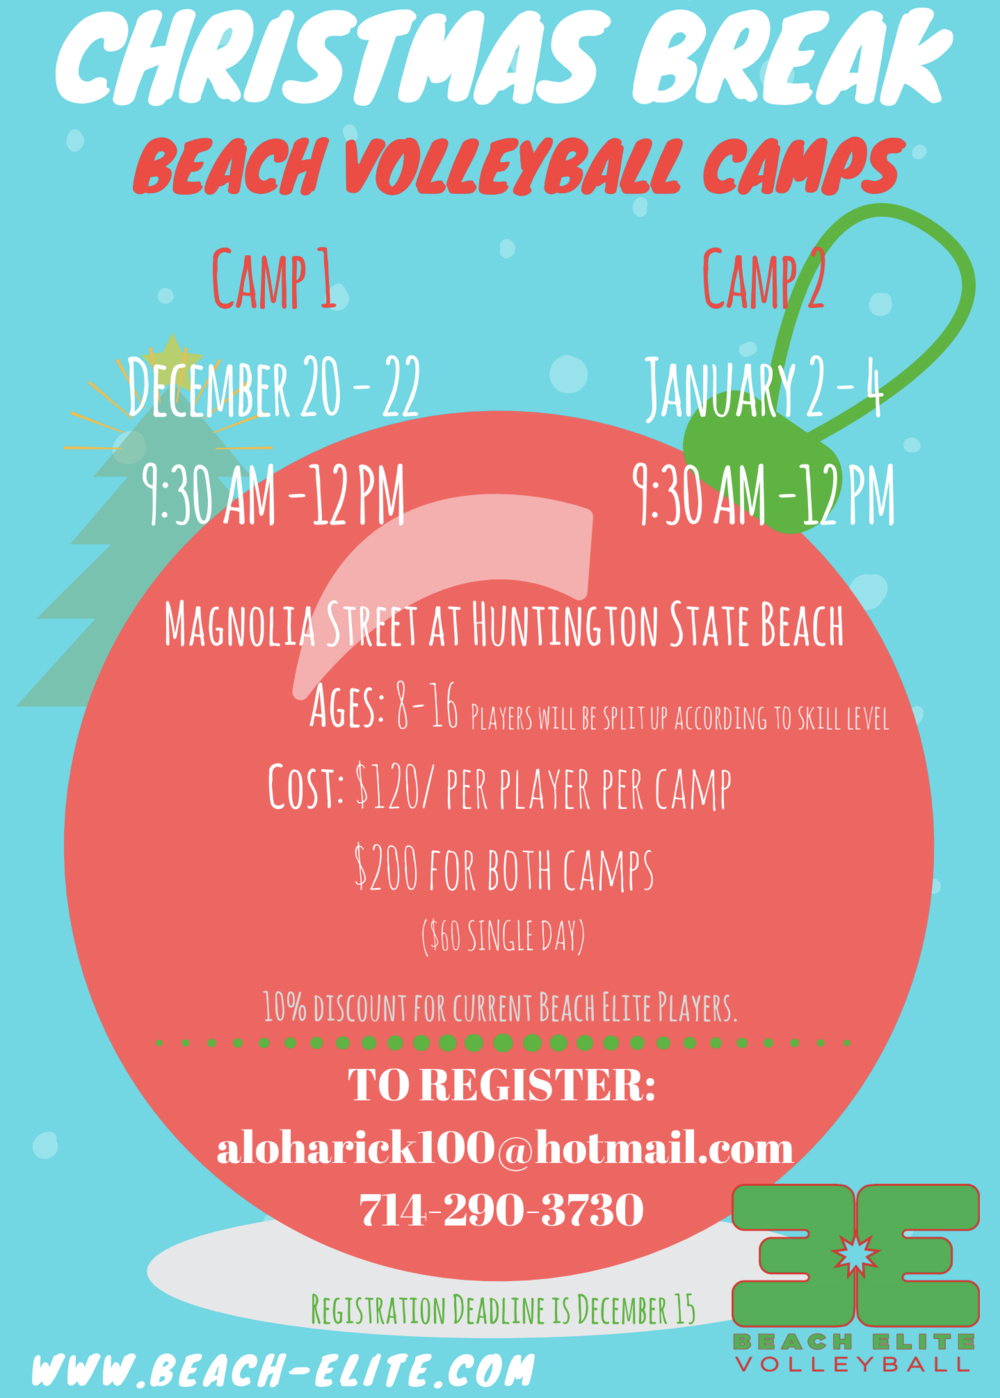 - Click the button to register for 1 or 2 Christmas Break Camps!